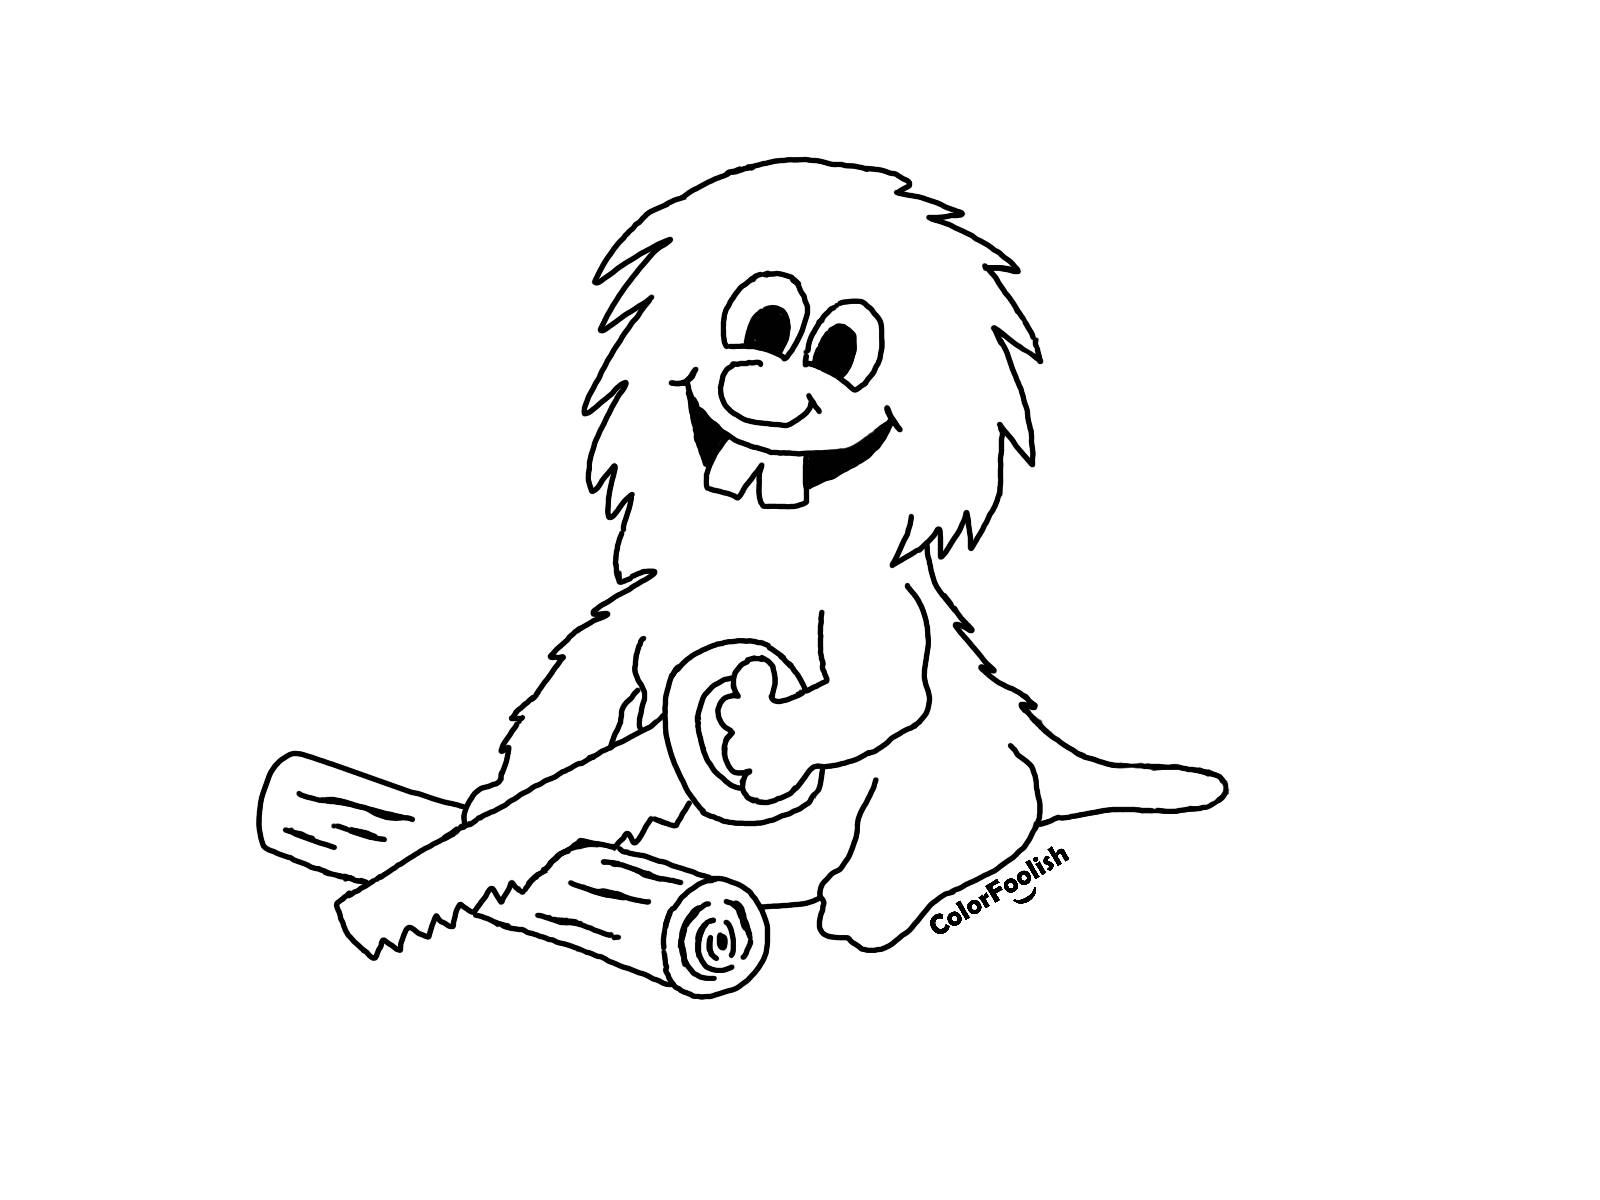 Coloring page of a beaver sawing